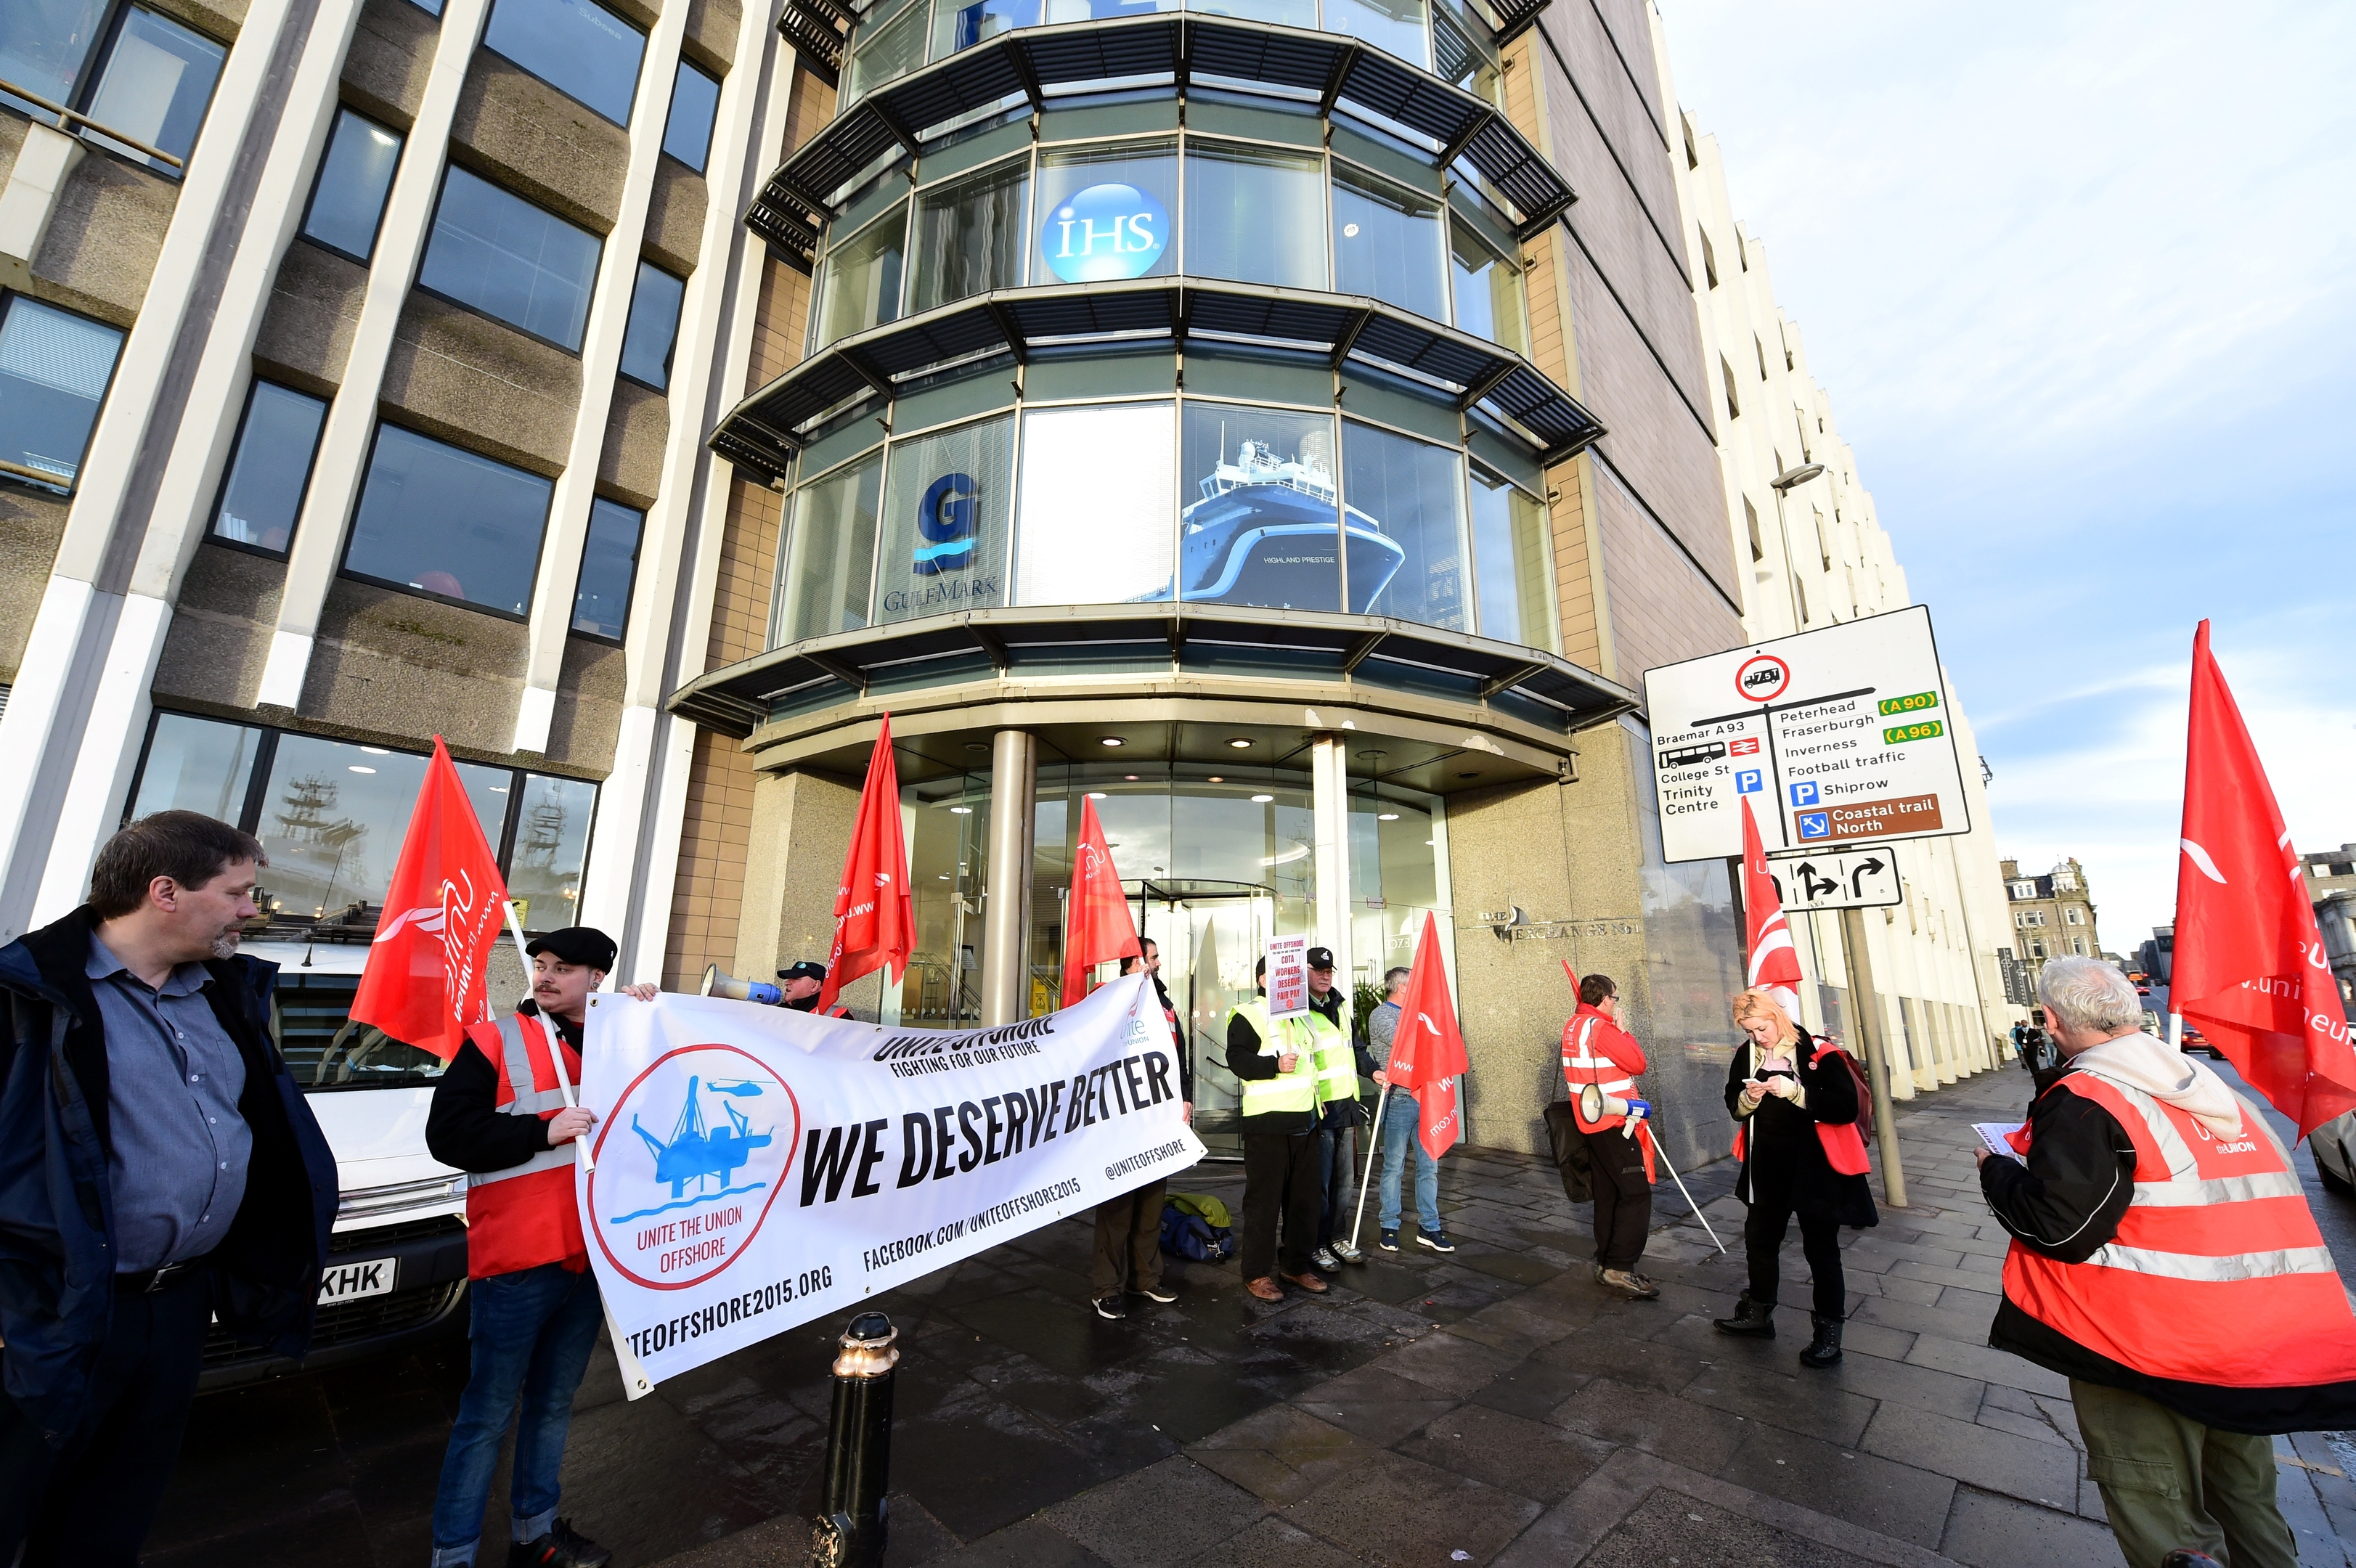 Members of the Unite Union protesting against North Sea catering employers in October 2015.